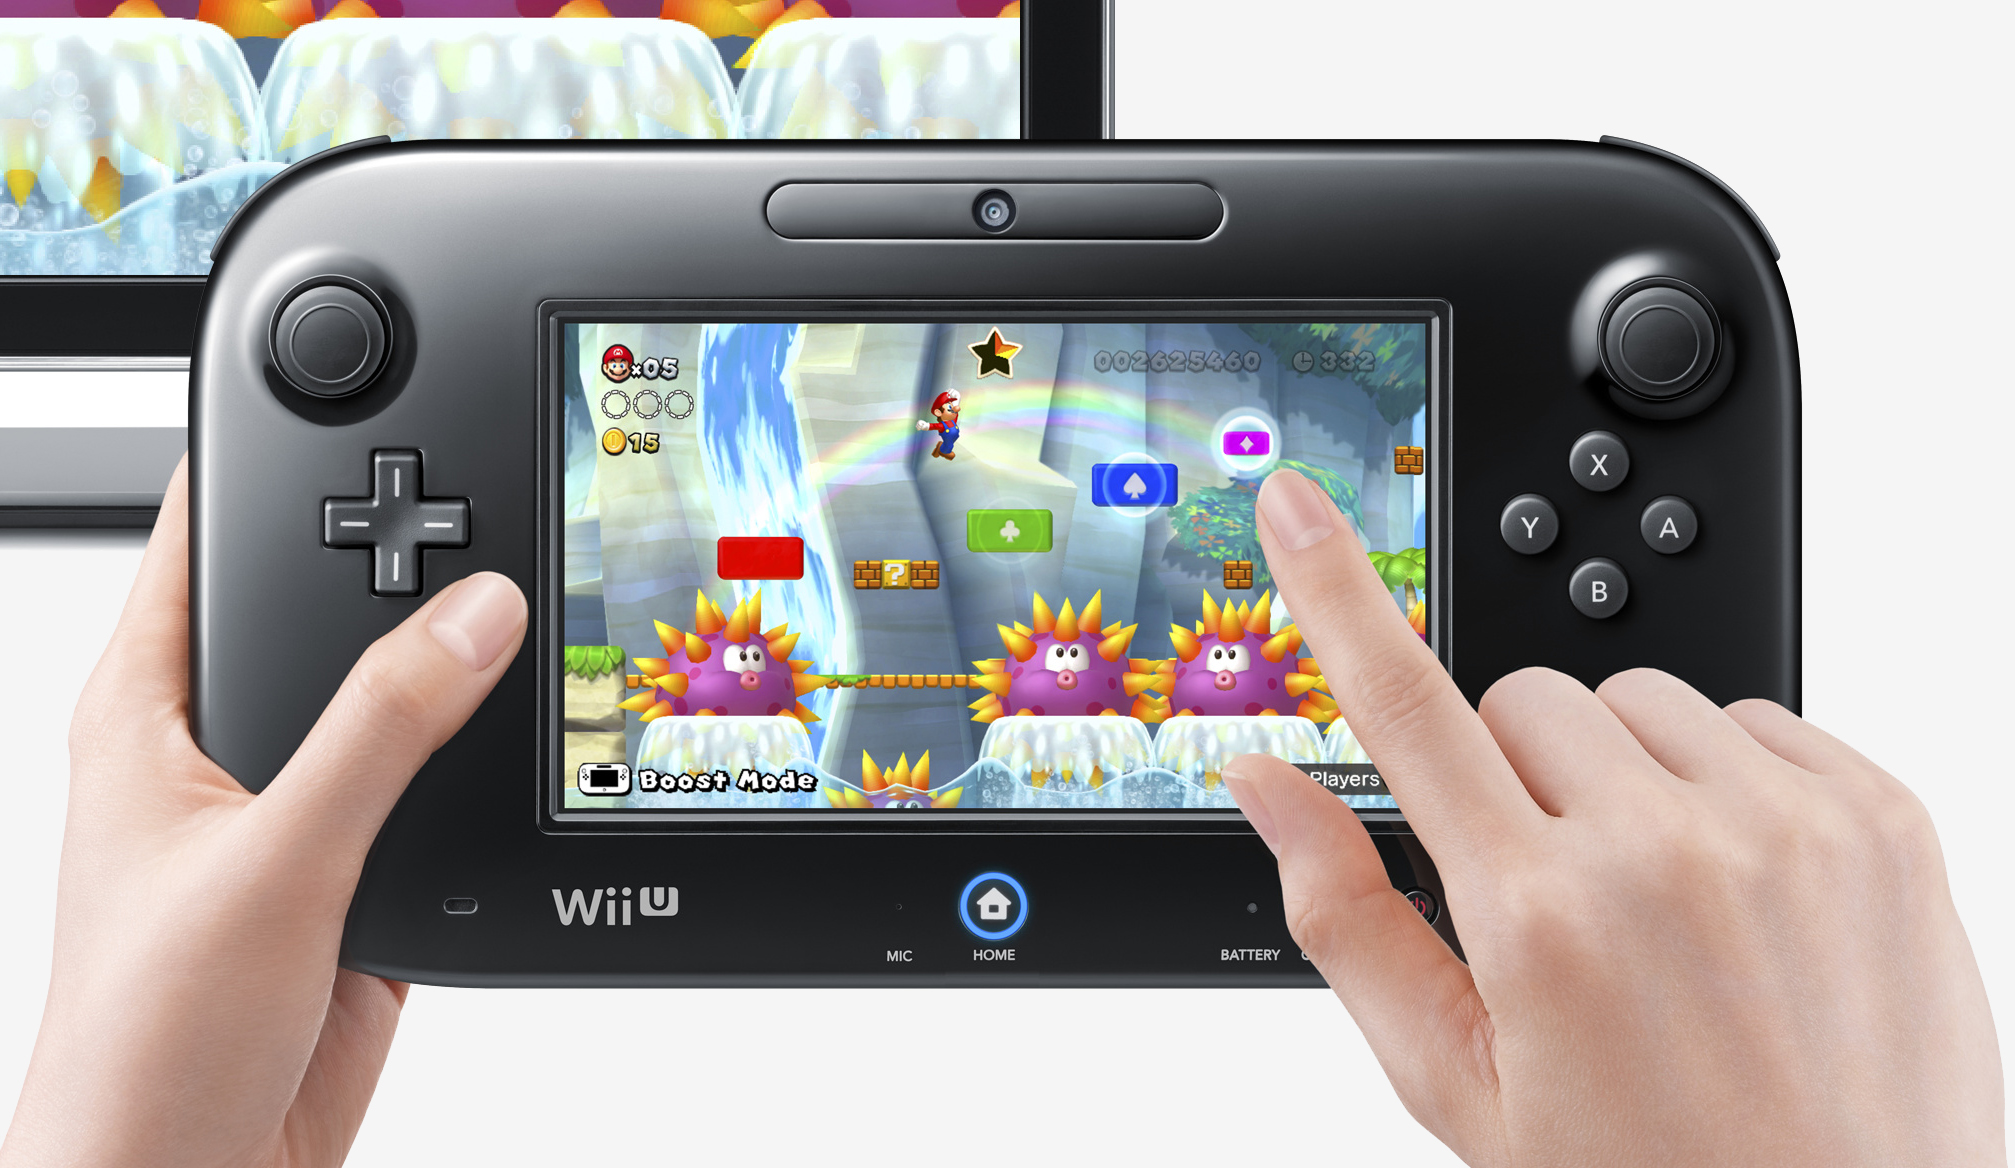 nintendo, gaming, wii u, gaming console, switch